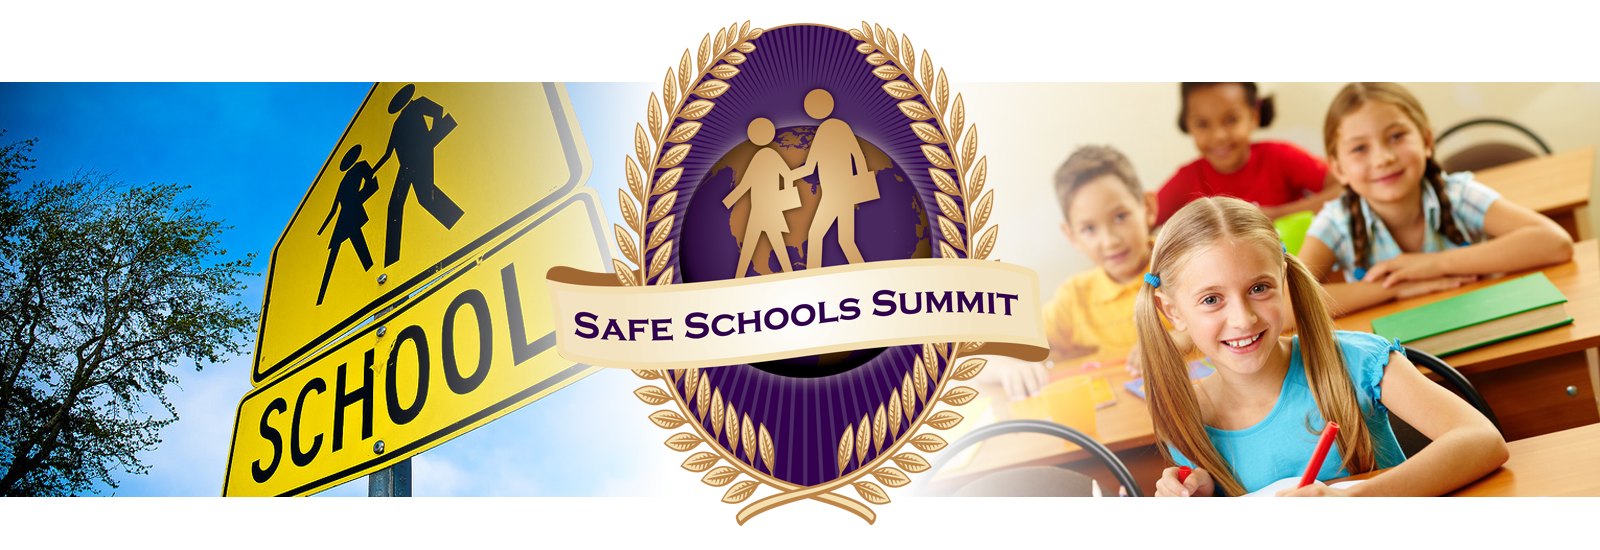 Safe Schools Summit | Long Beach Safe Schools Summit